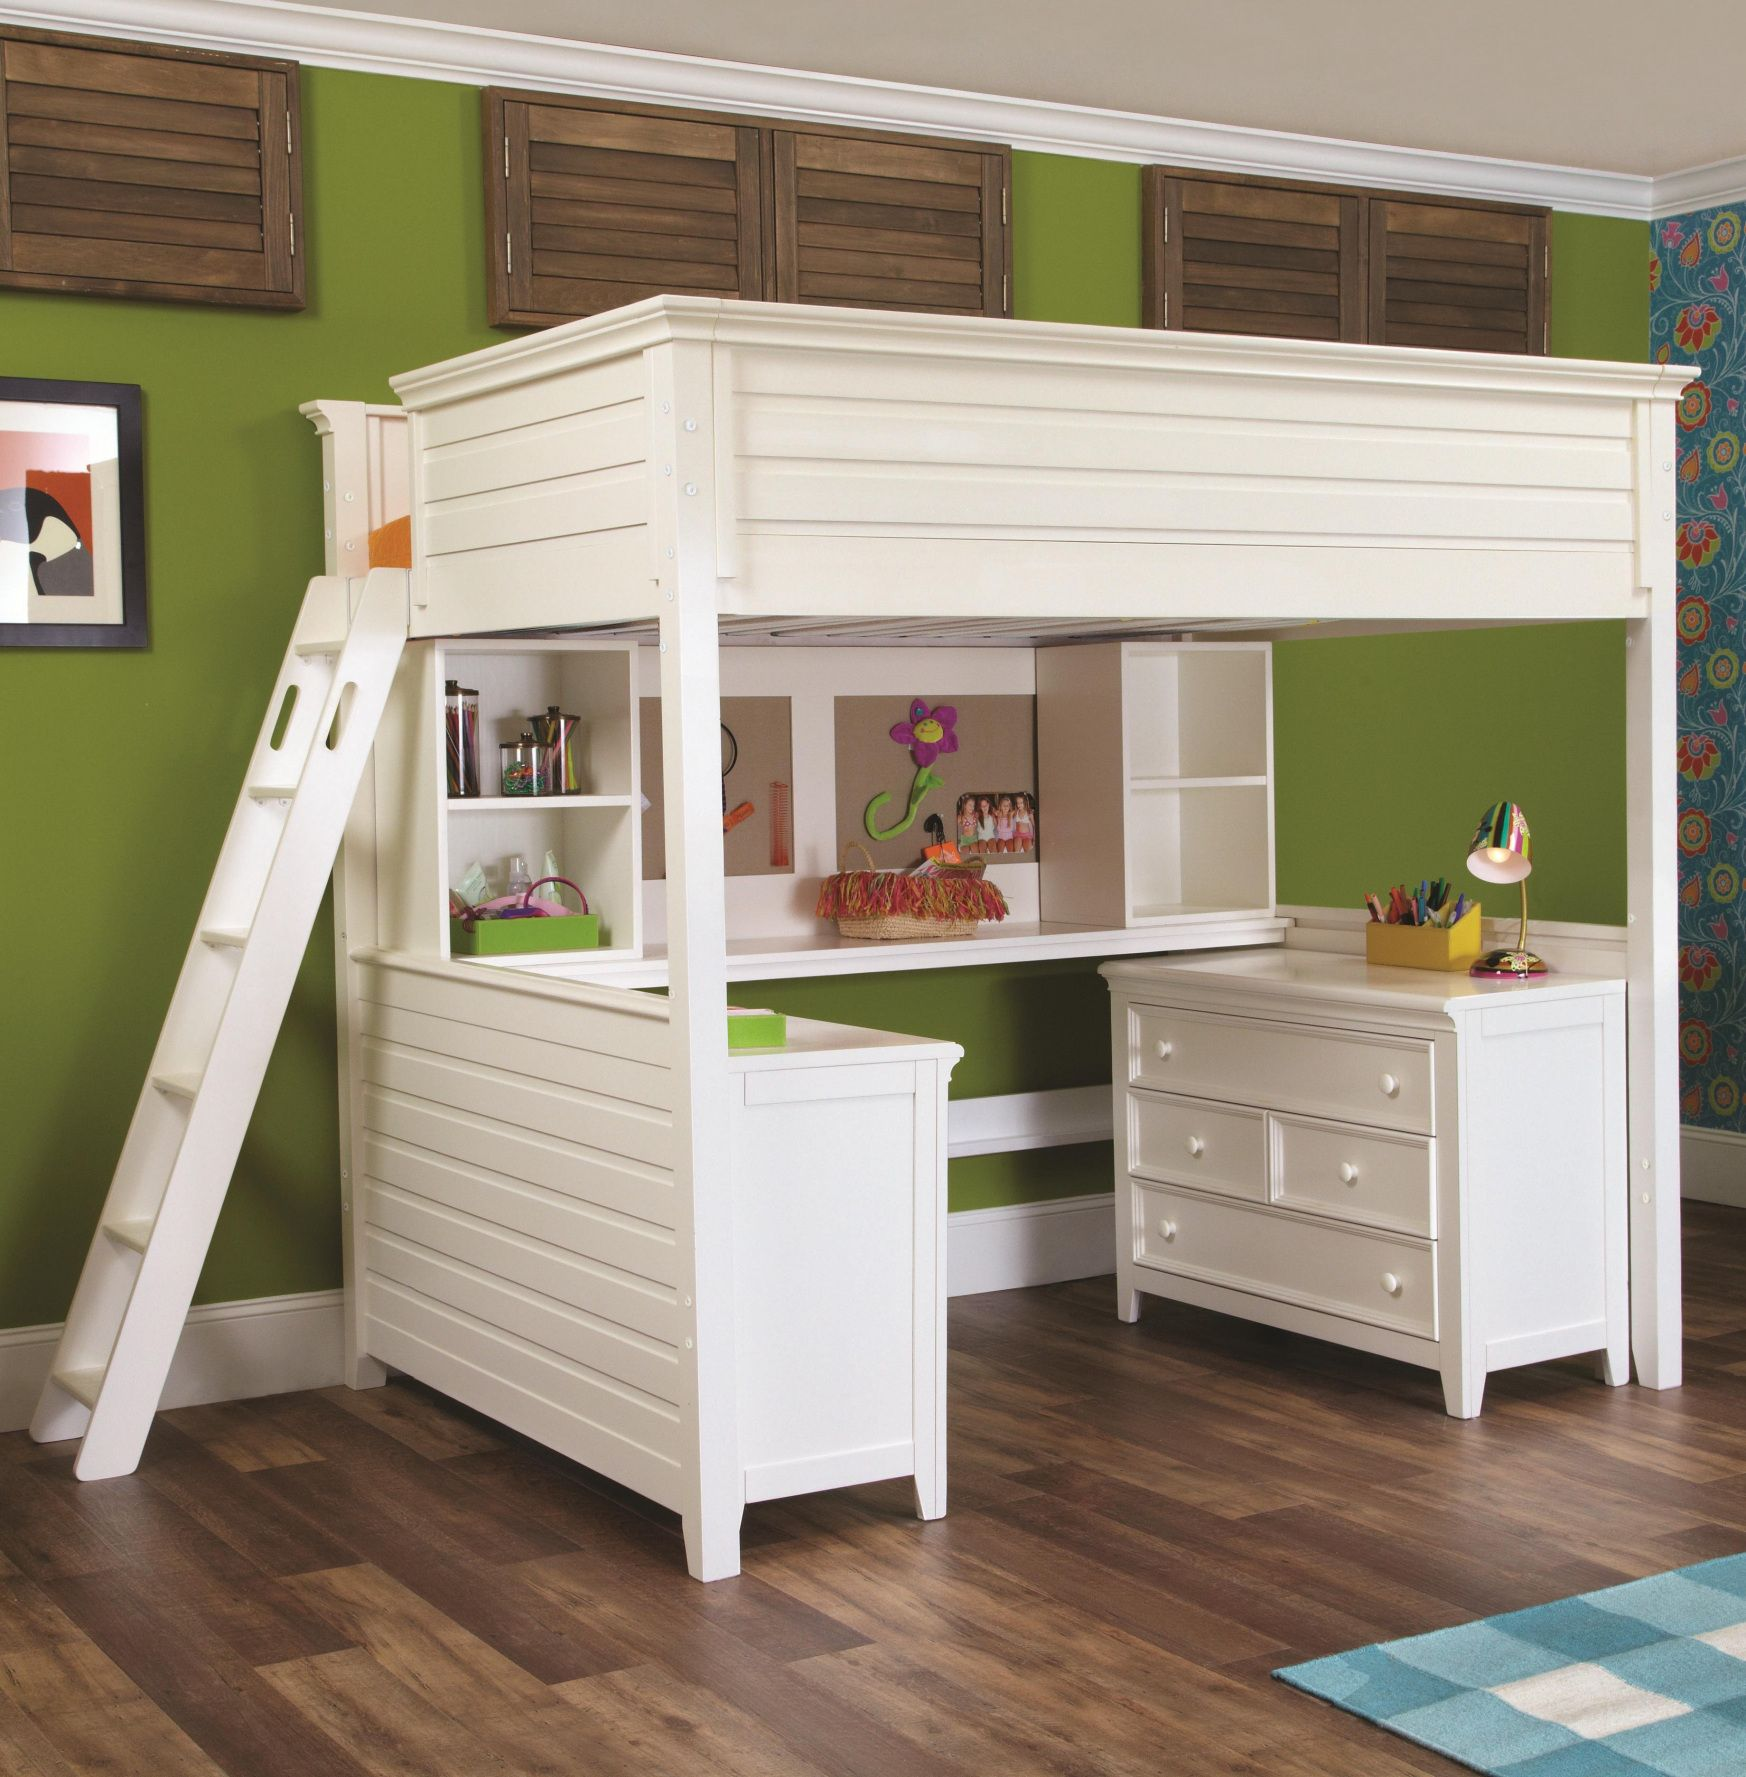 Ideas for space under loft bed   Bunk Bed with Space Underneath  Photos Of Bedrooms Interior